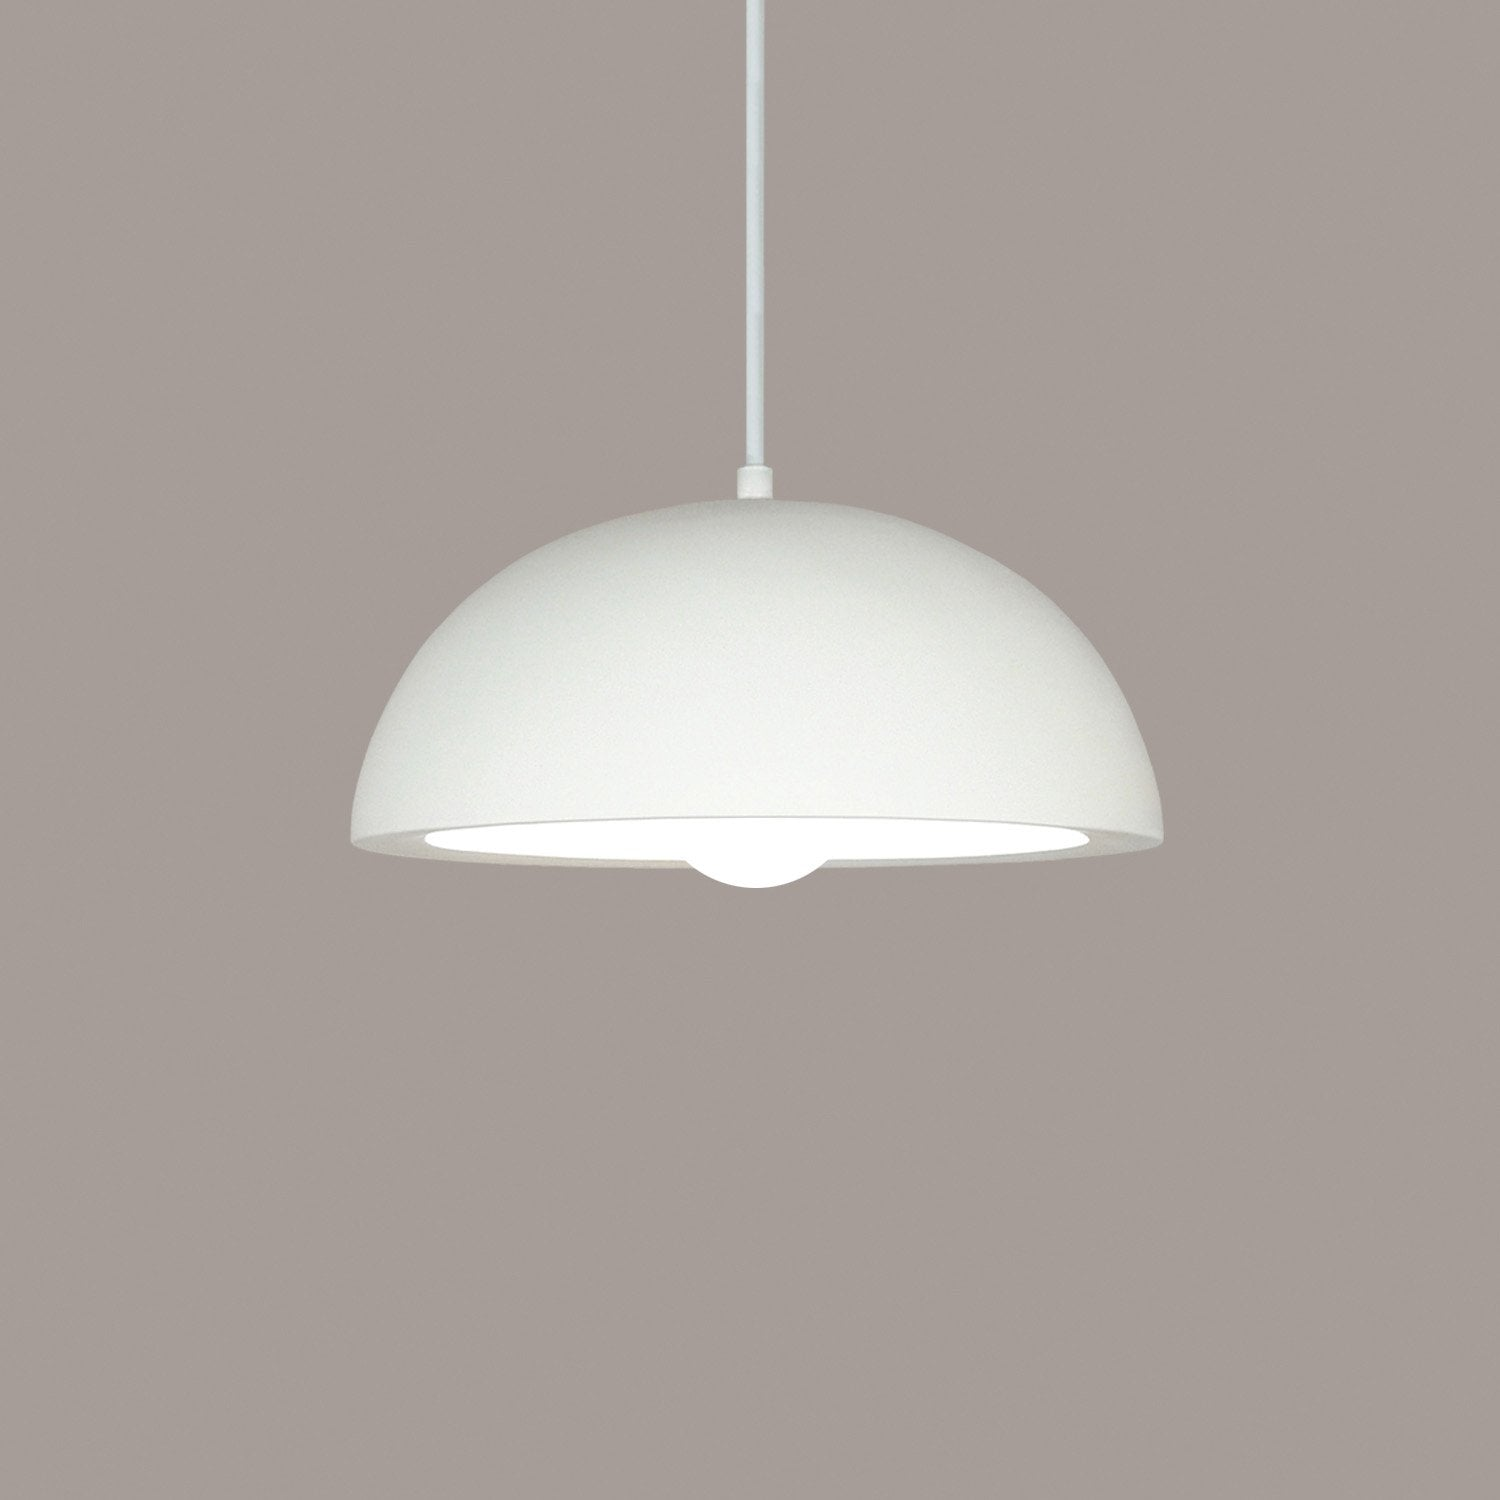 A19 P301-CFL13-A24-BCC Islands of Light Collection Thera Rich Earth Finish Pendant from A19